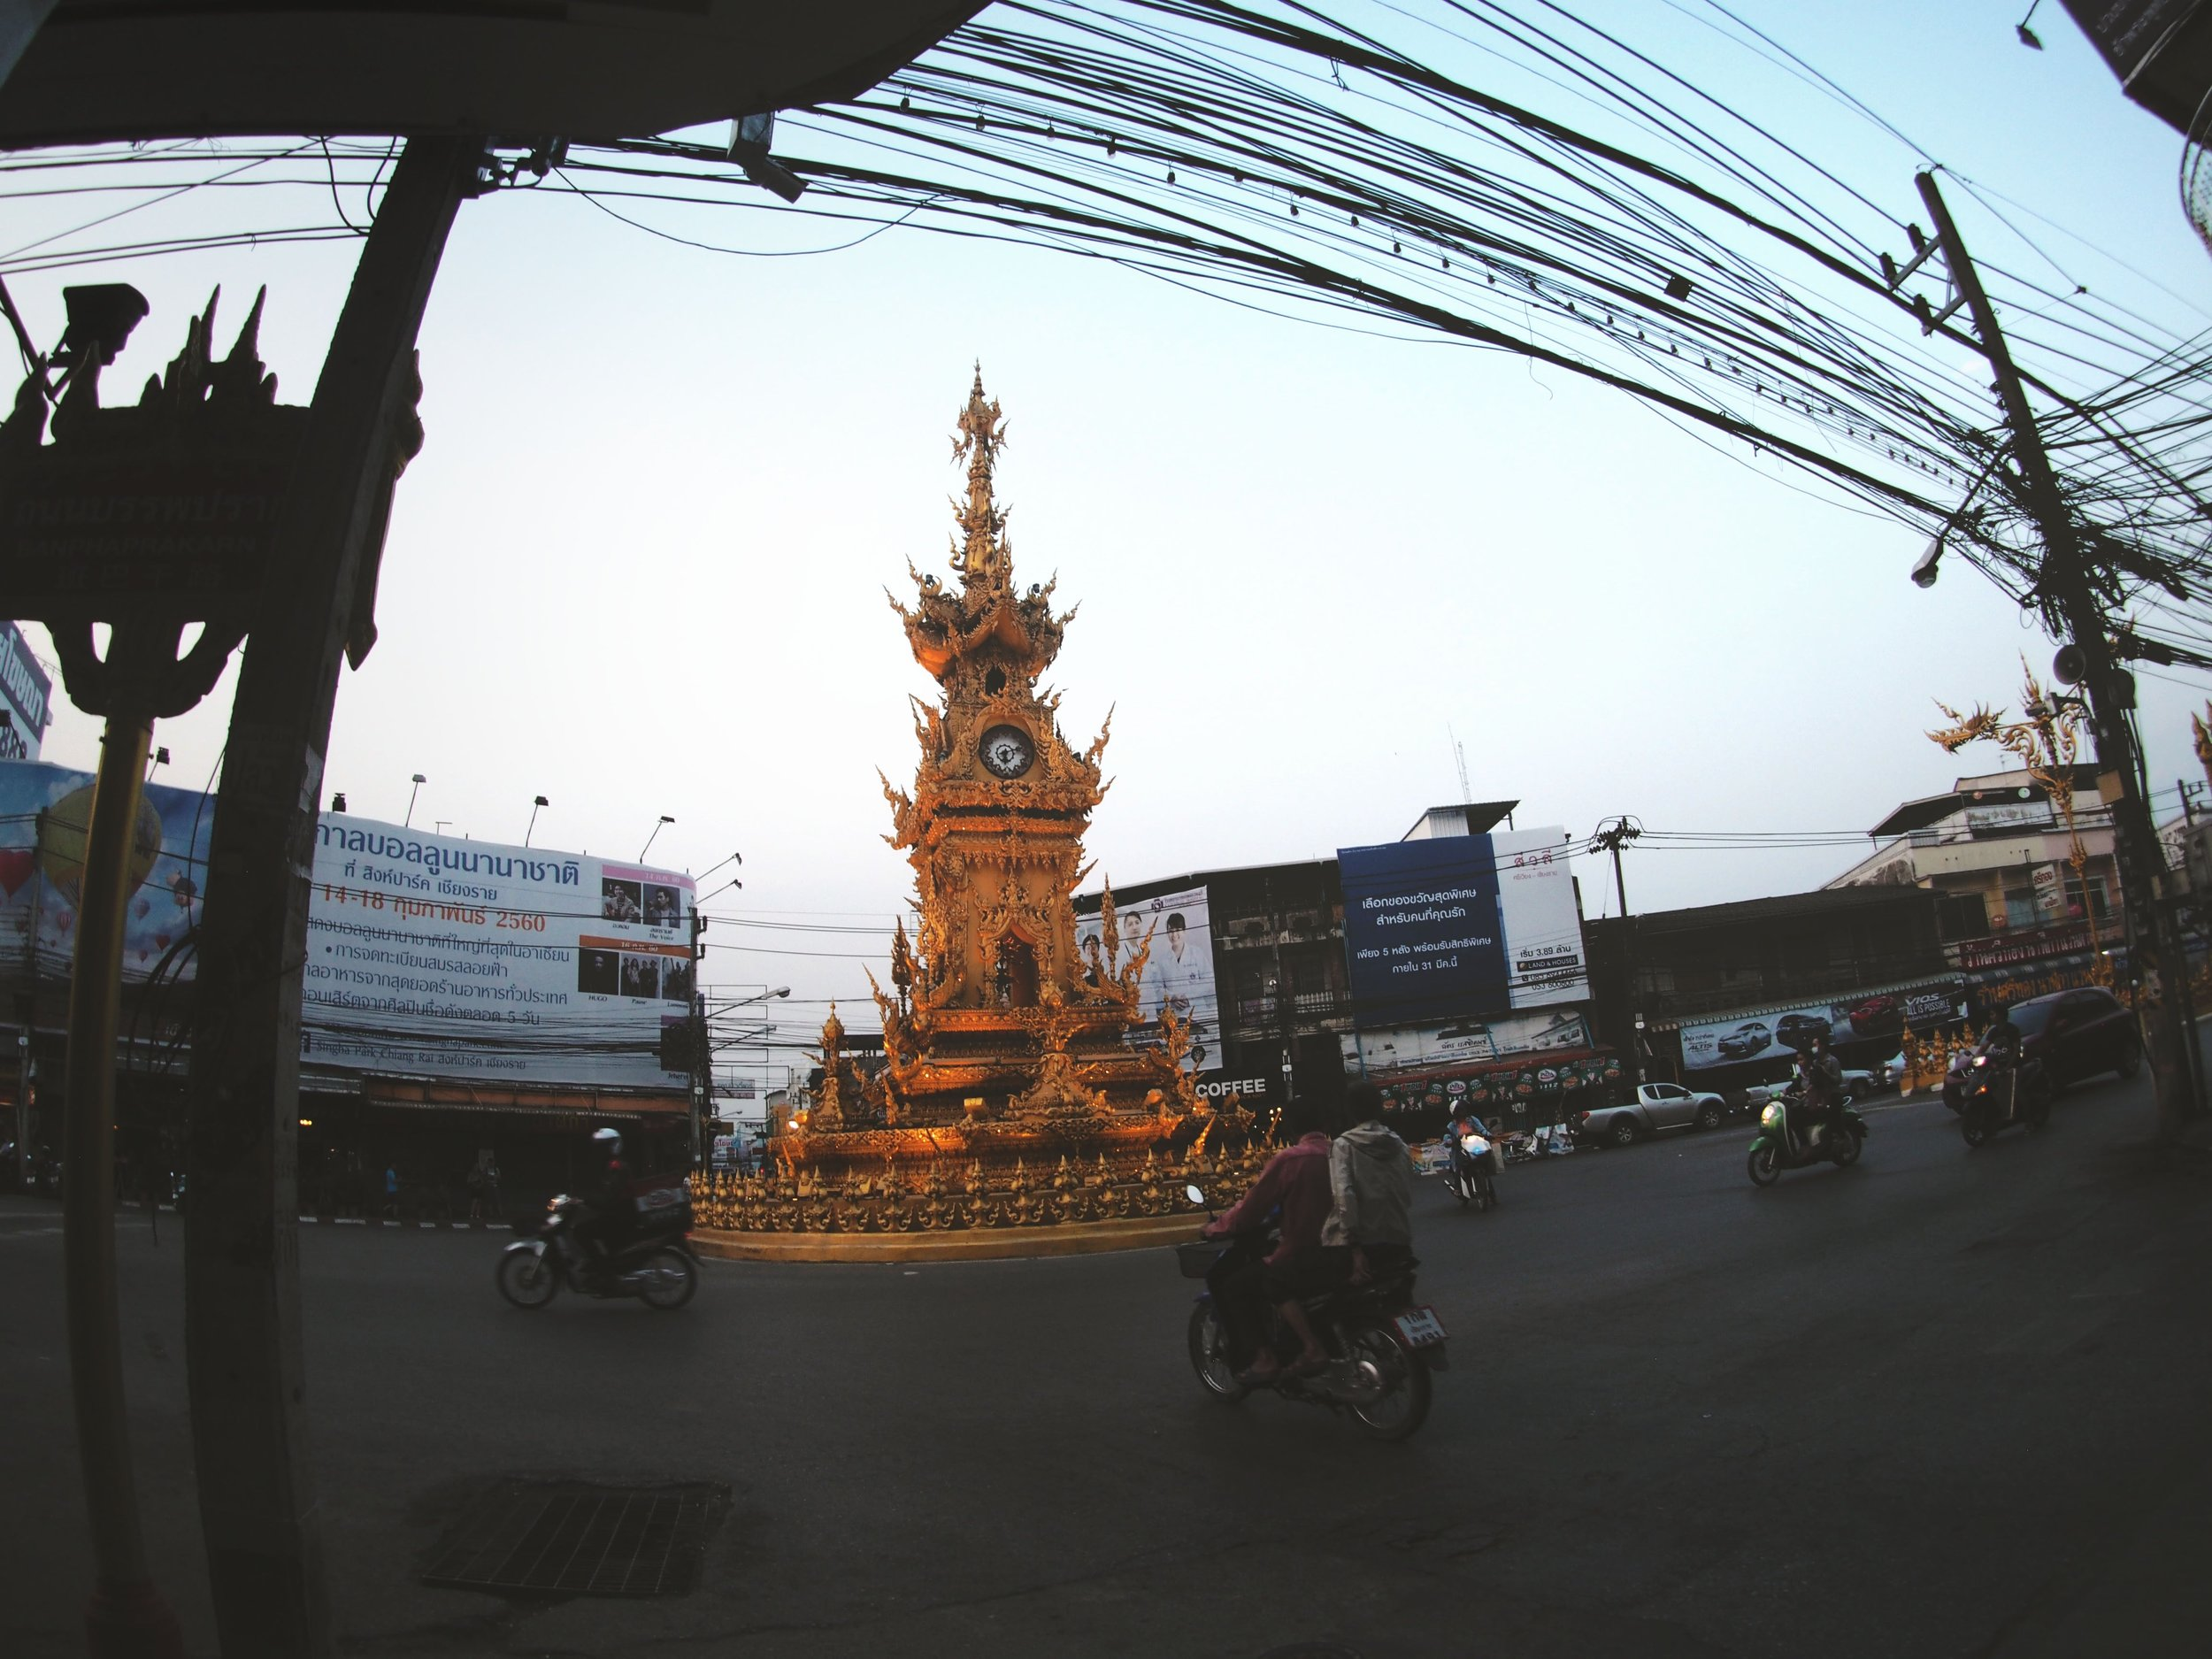 A relatively calm roundabout around the Chiang Rai clock tower.